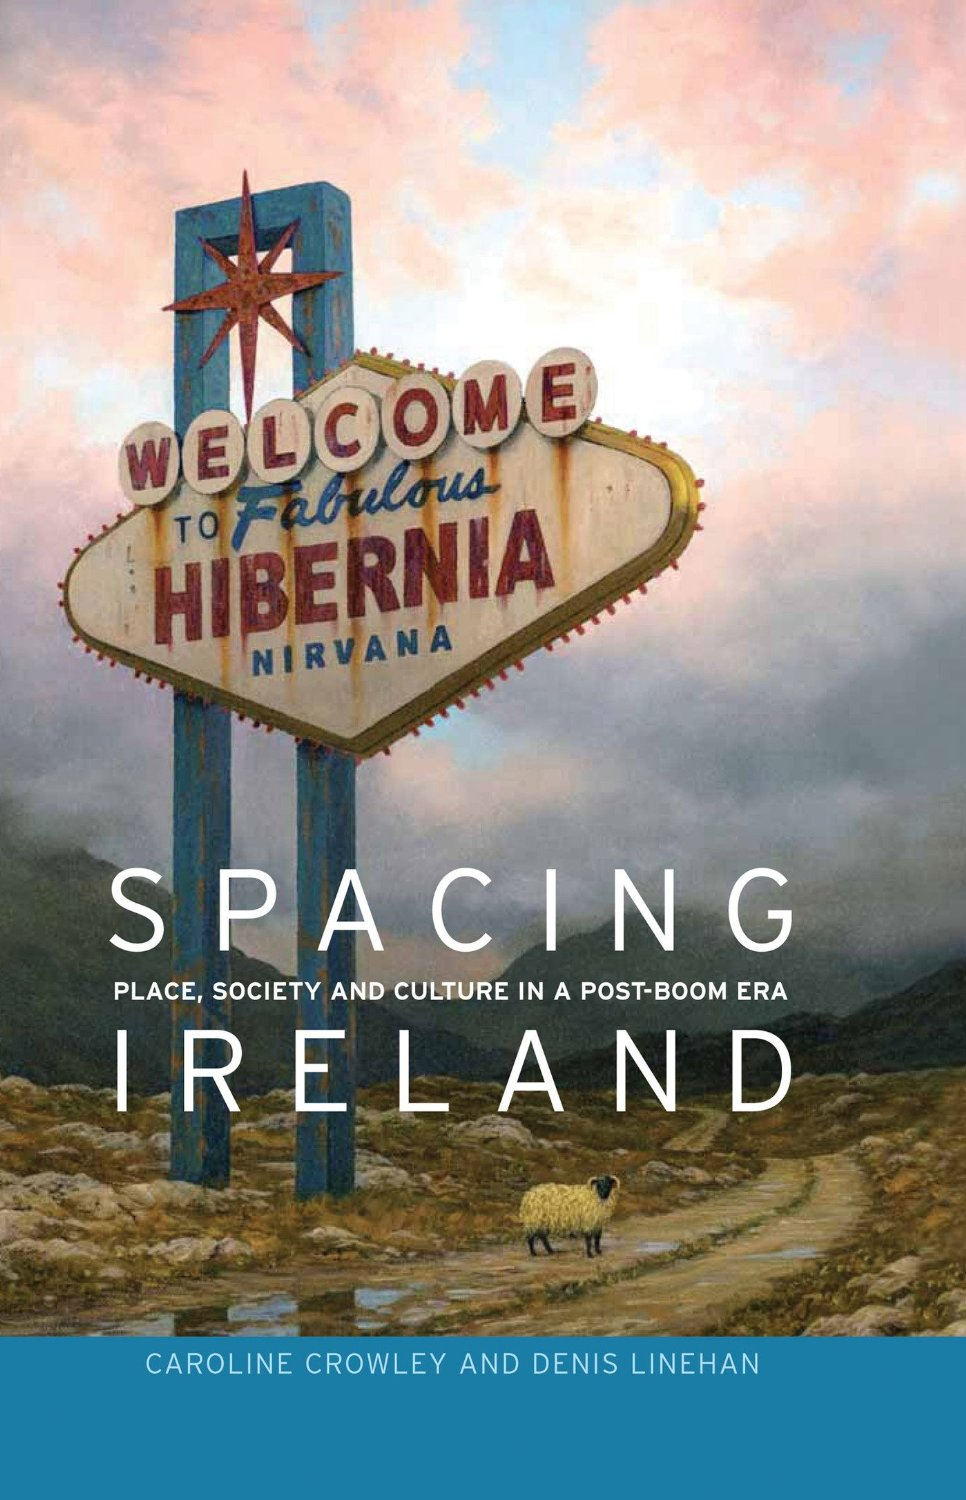 the transformation of ireland economic cultural boom A new book about ireland after the crash of the celtic tiger economy has  new  book: spacing ireland: place, society and culture in a post-boom era   characterise the transformation of ireland over the last two decades,.